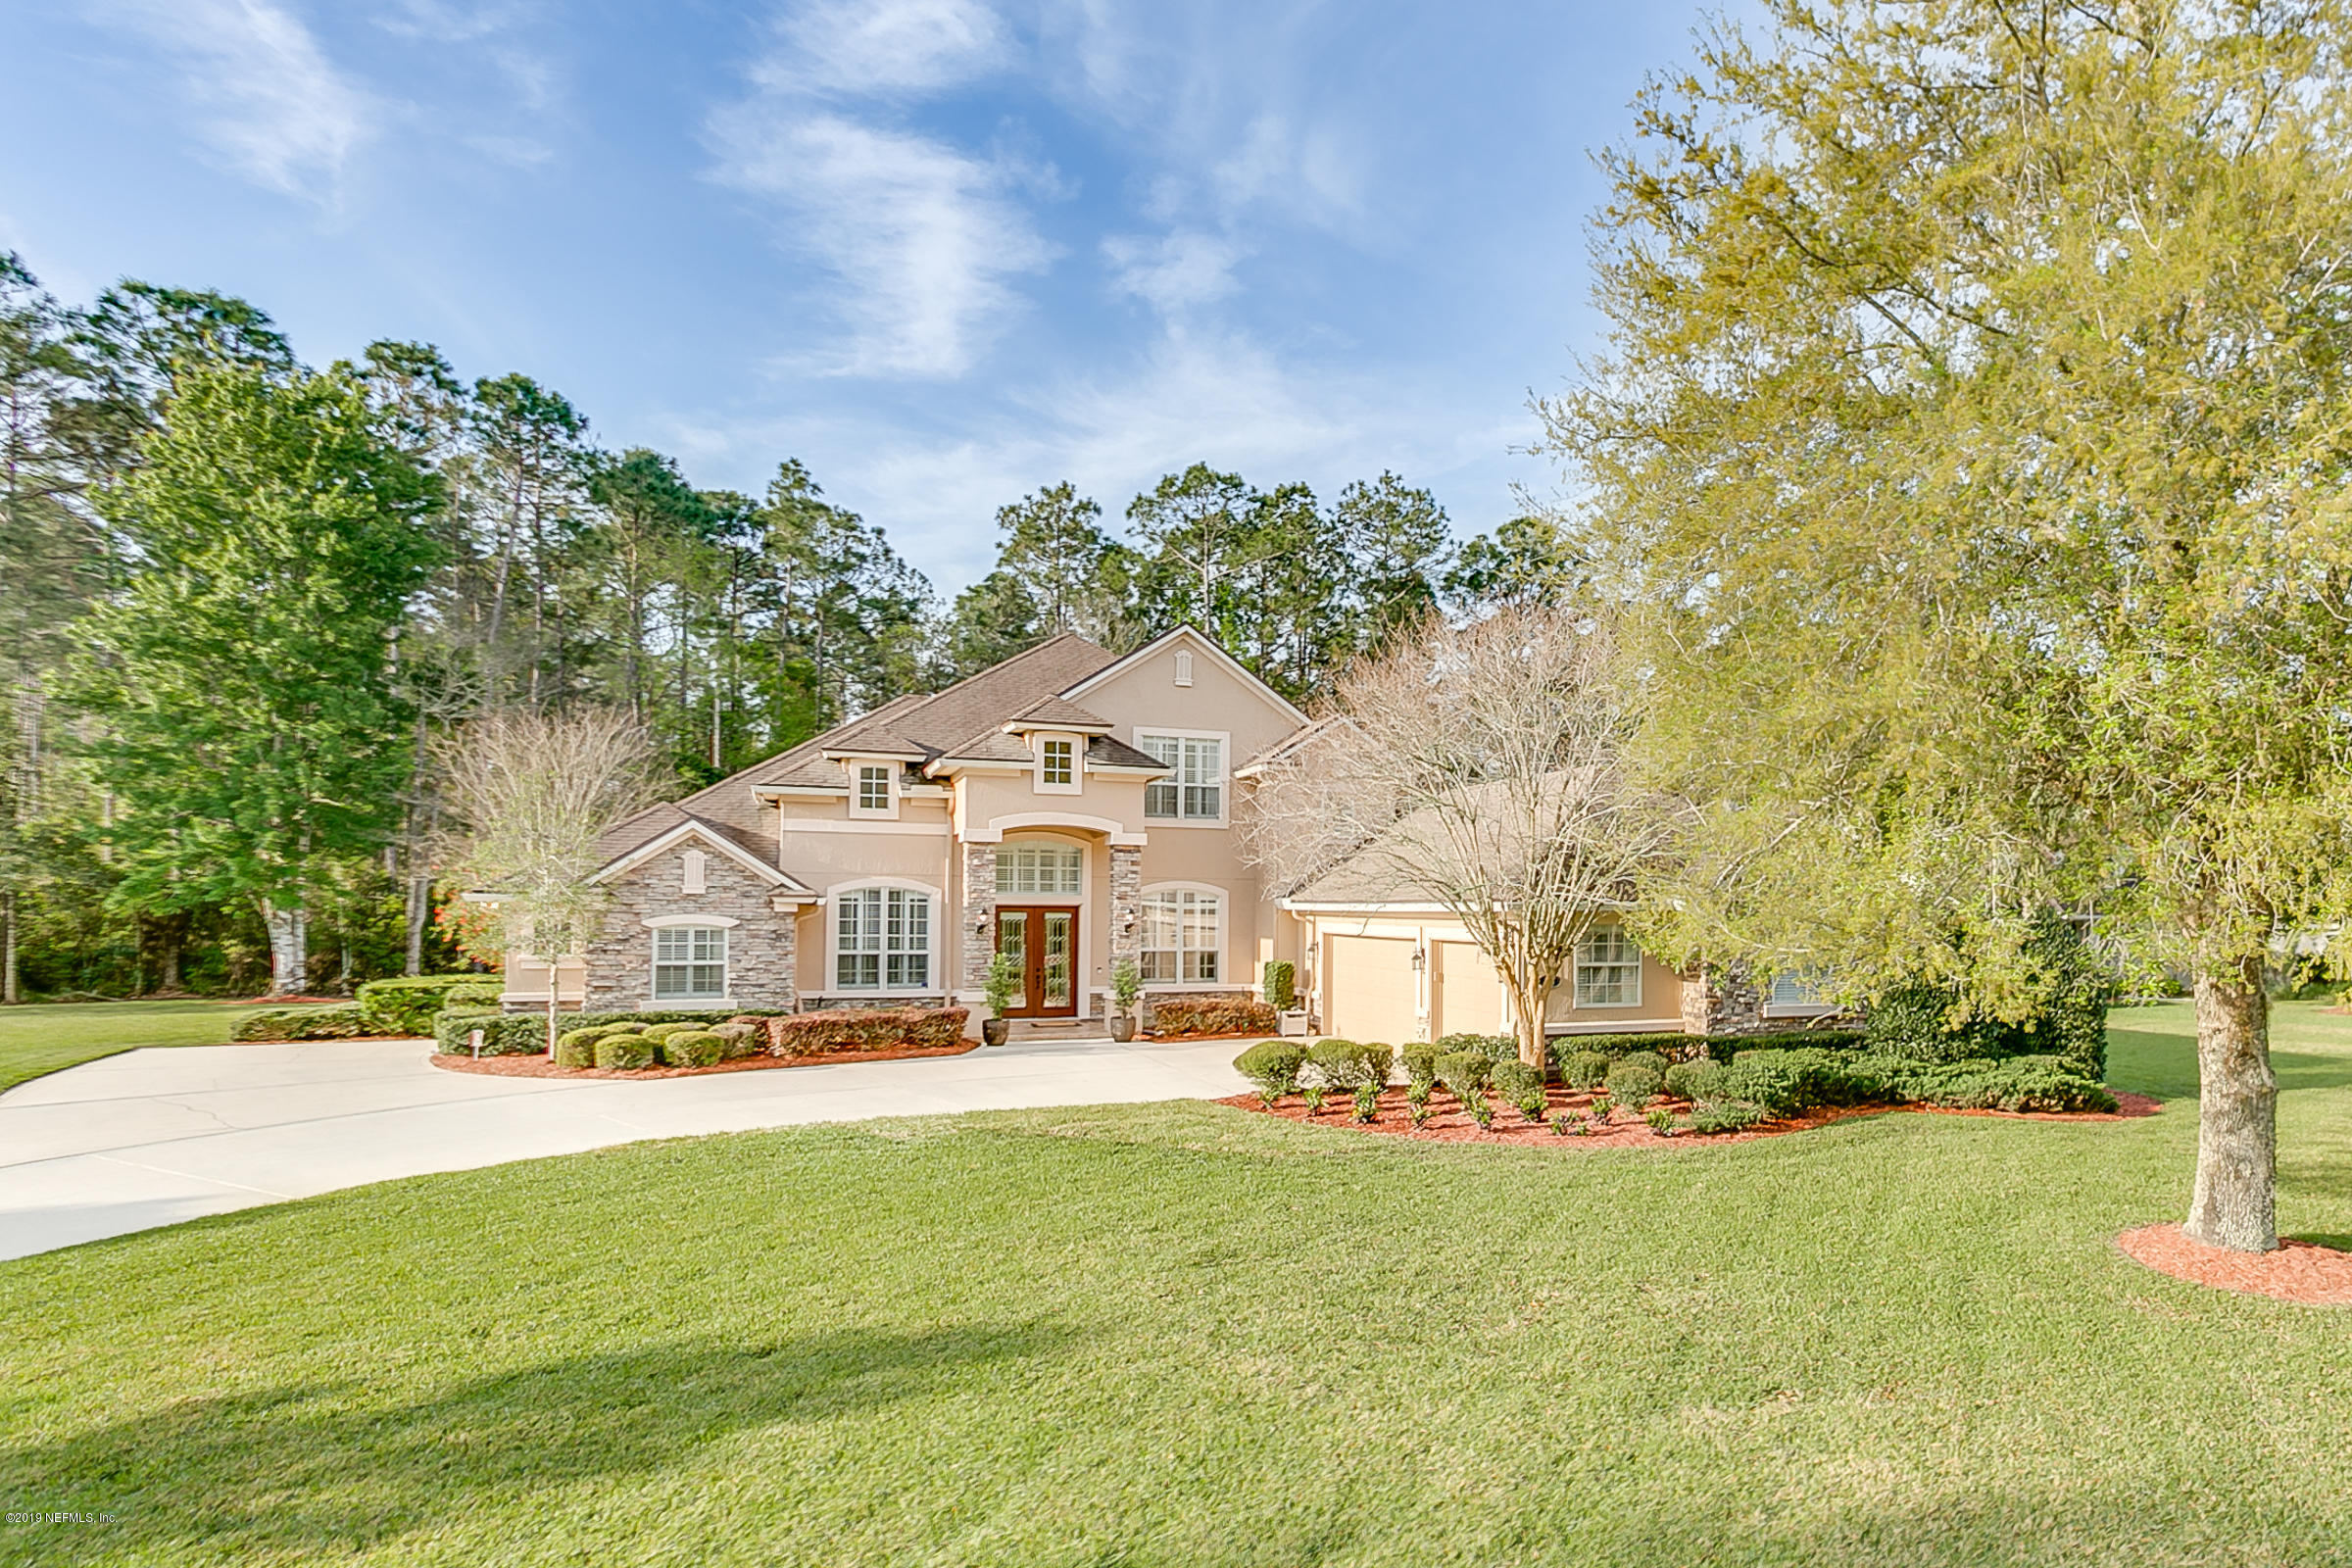 One of Jacksonville 6 Bedroom Homes for Sale at 213 S LOMBARDY LOOP